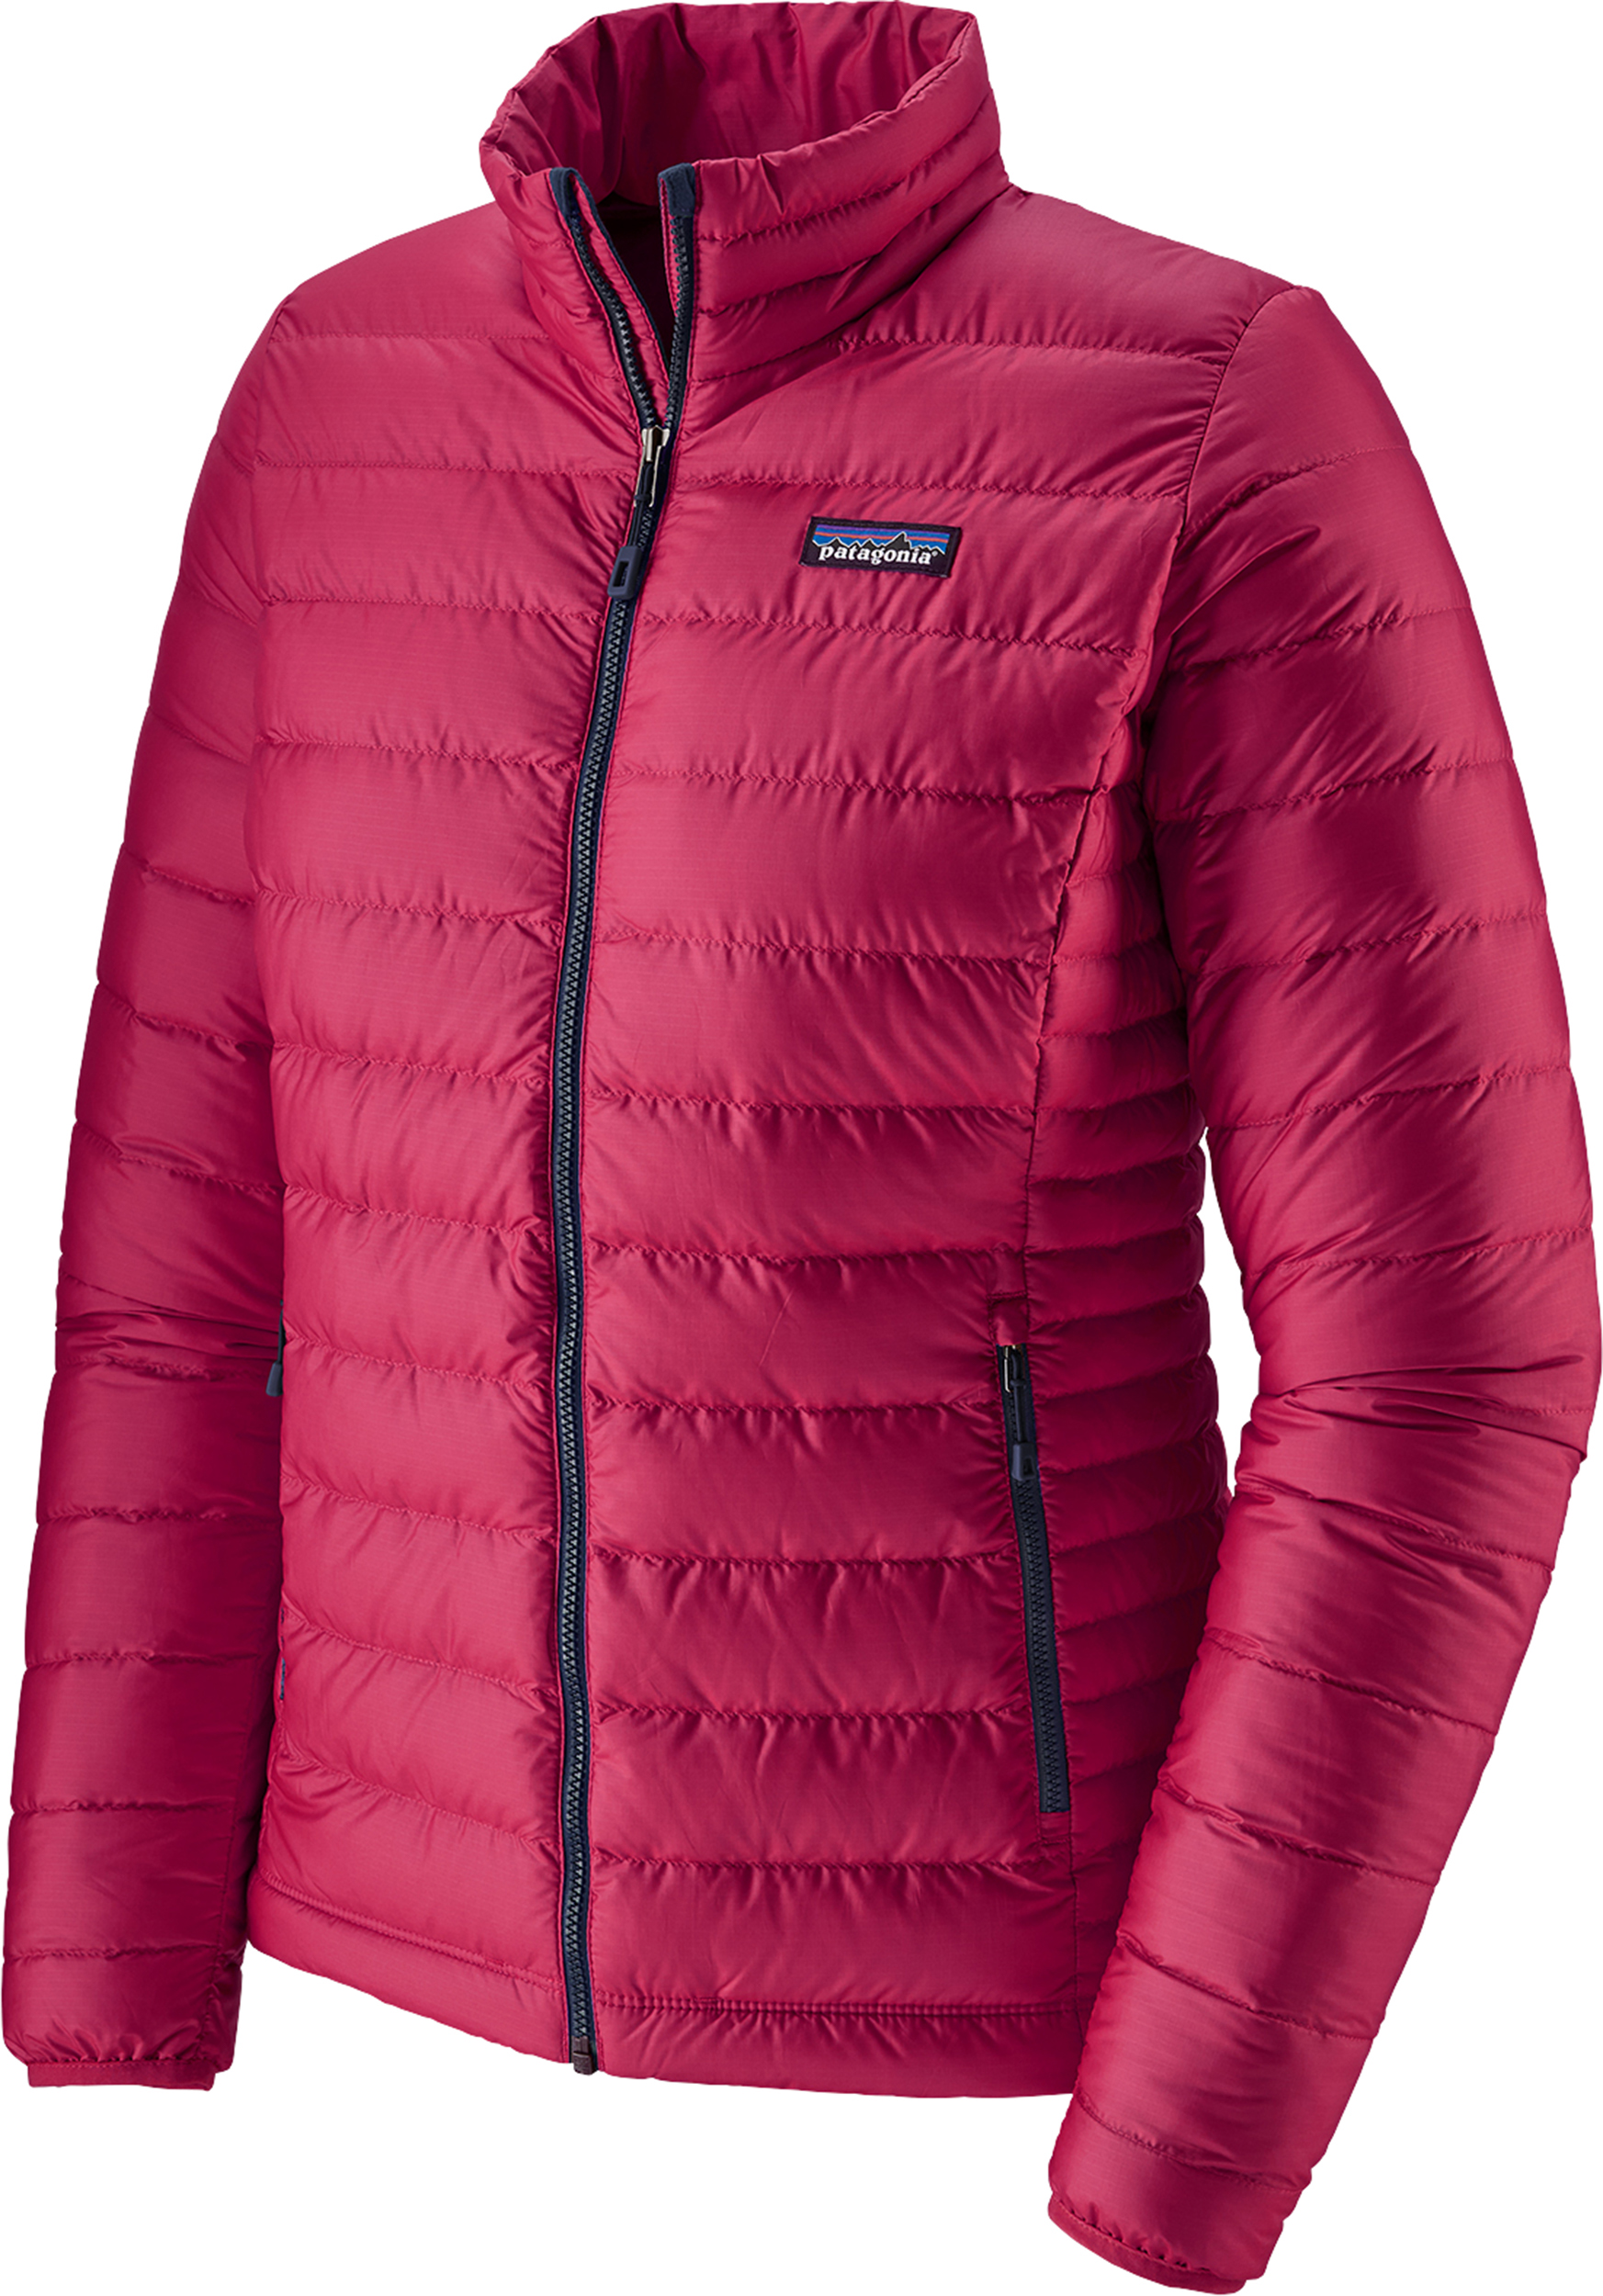 3cc093b95 Women's Down jackets | MEC